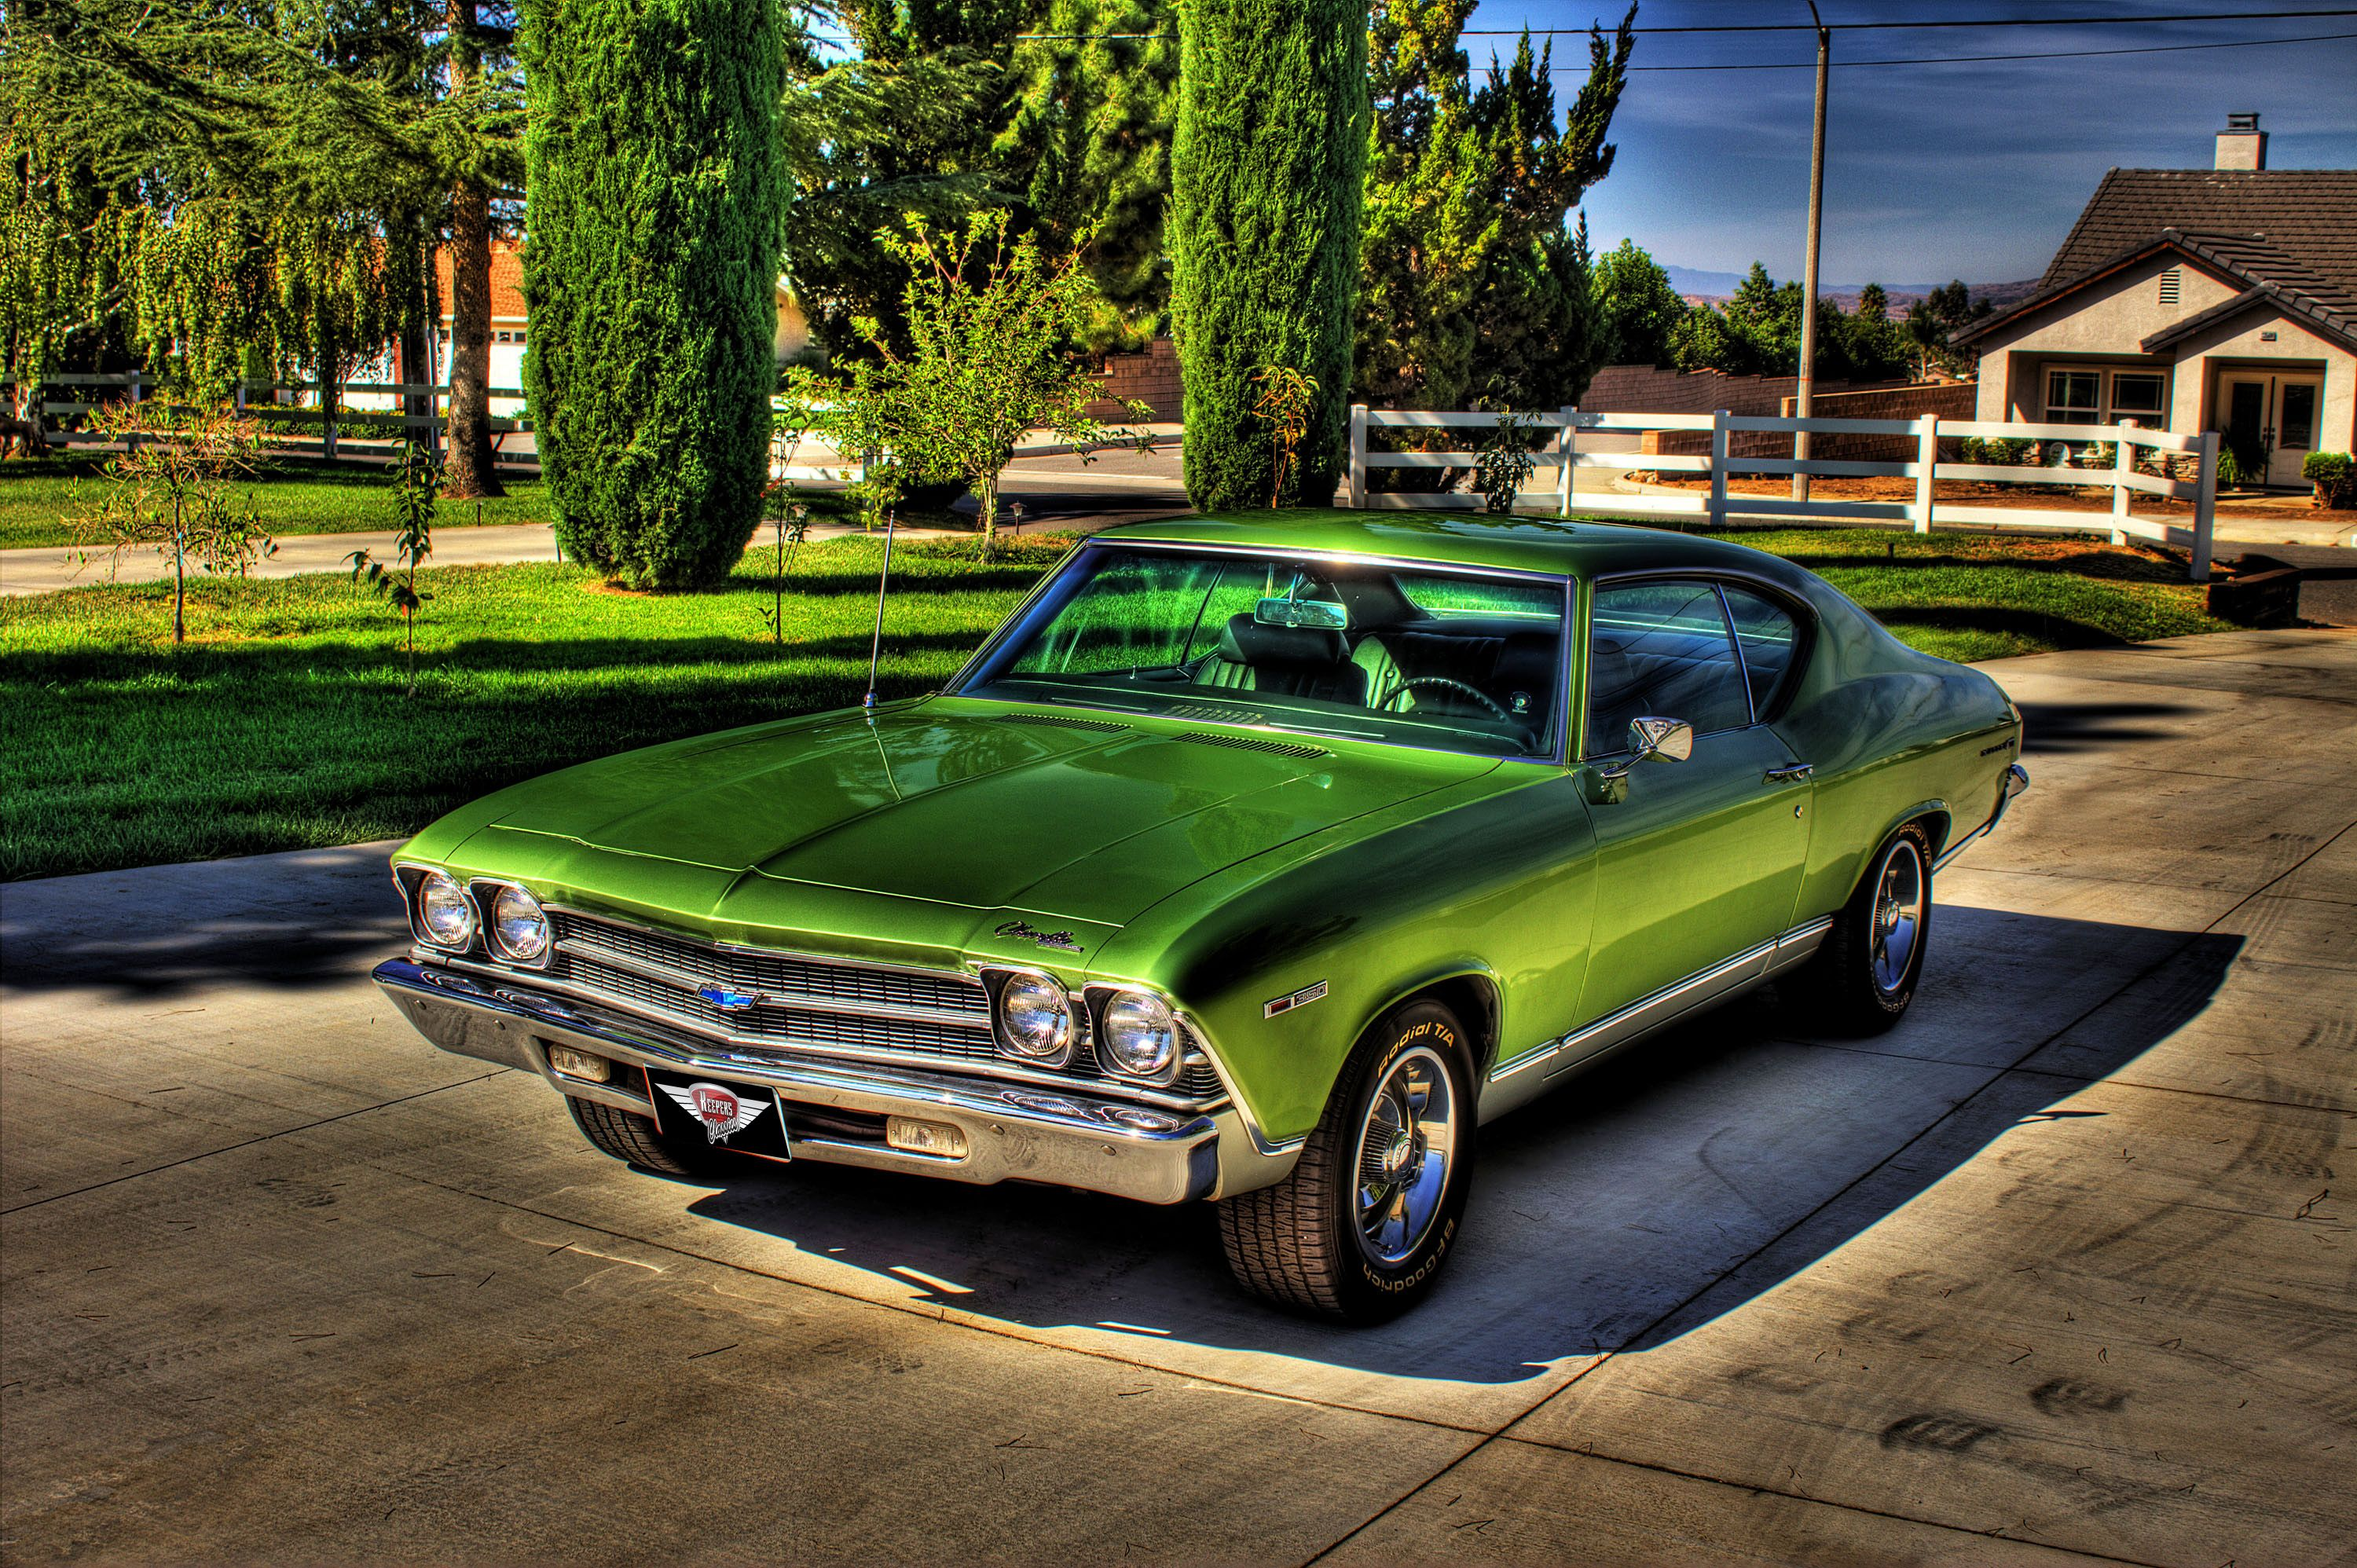 1969 Chevelle Old Muscle Cars Best Muscle Cars 60s Muscle Cars